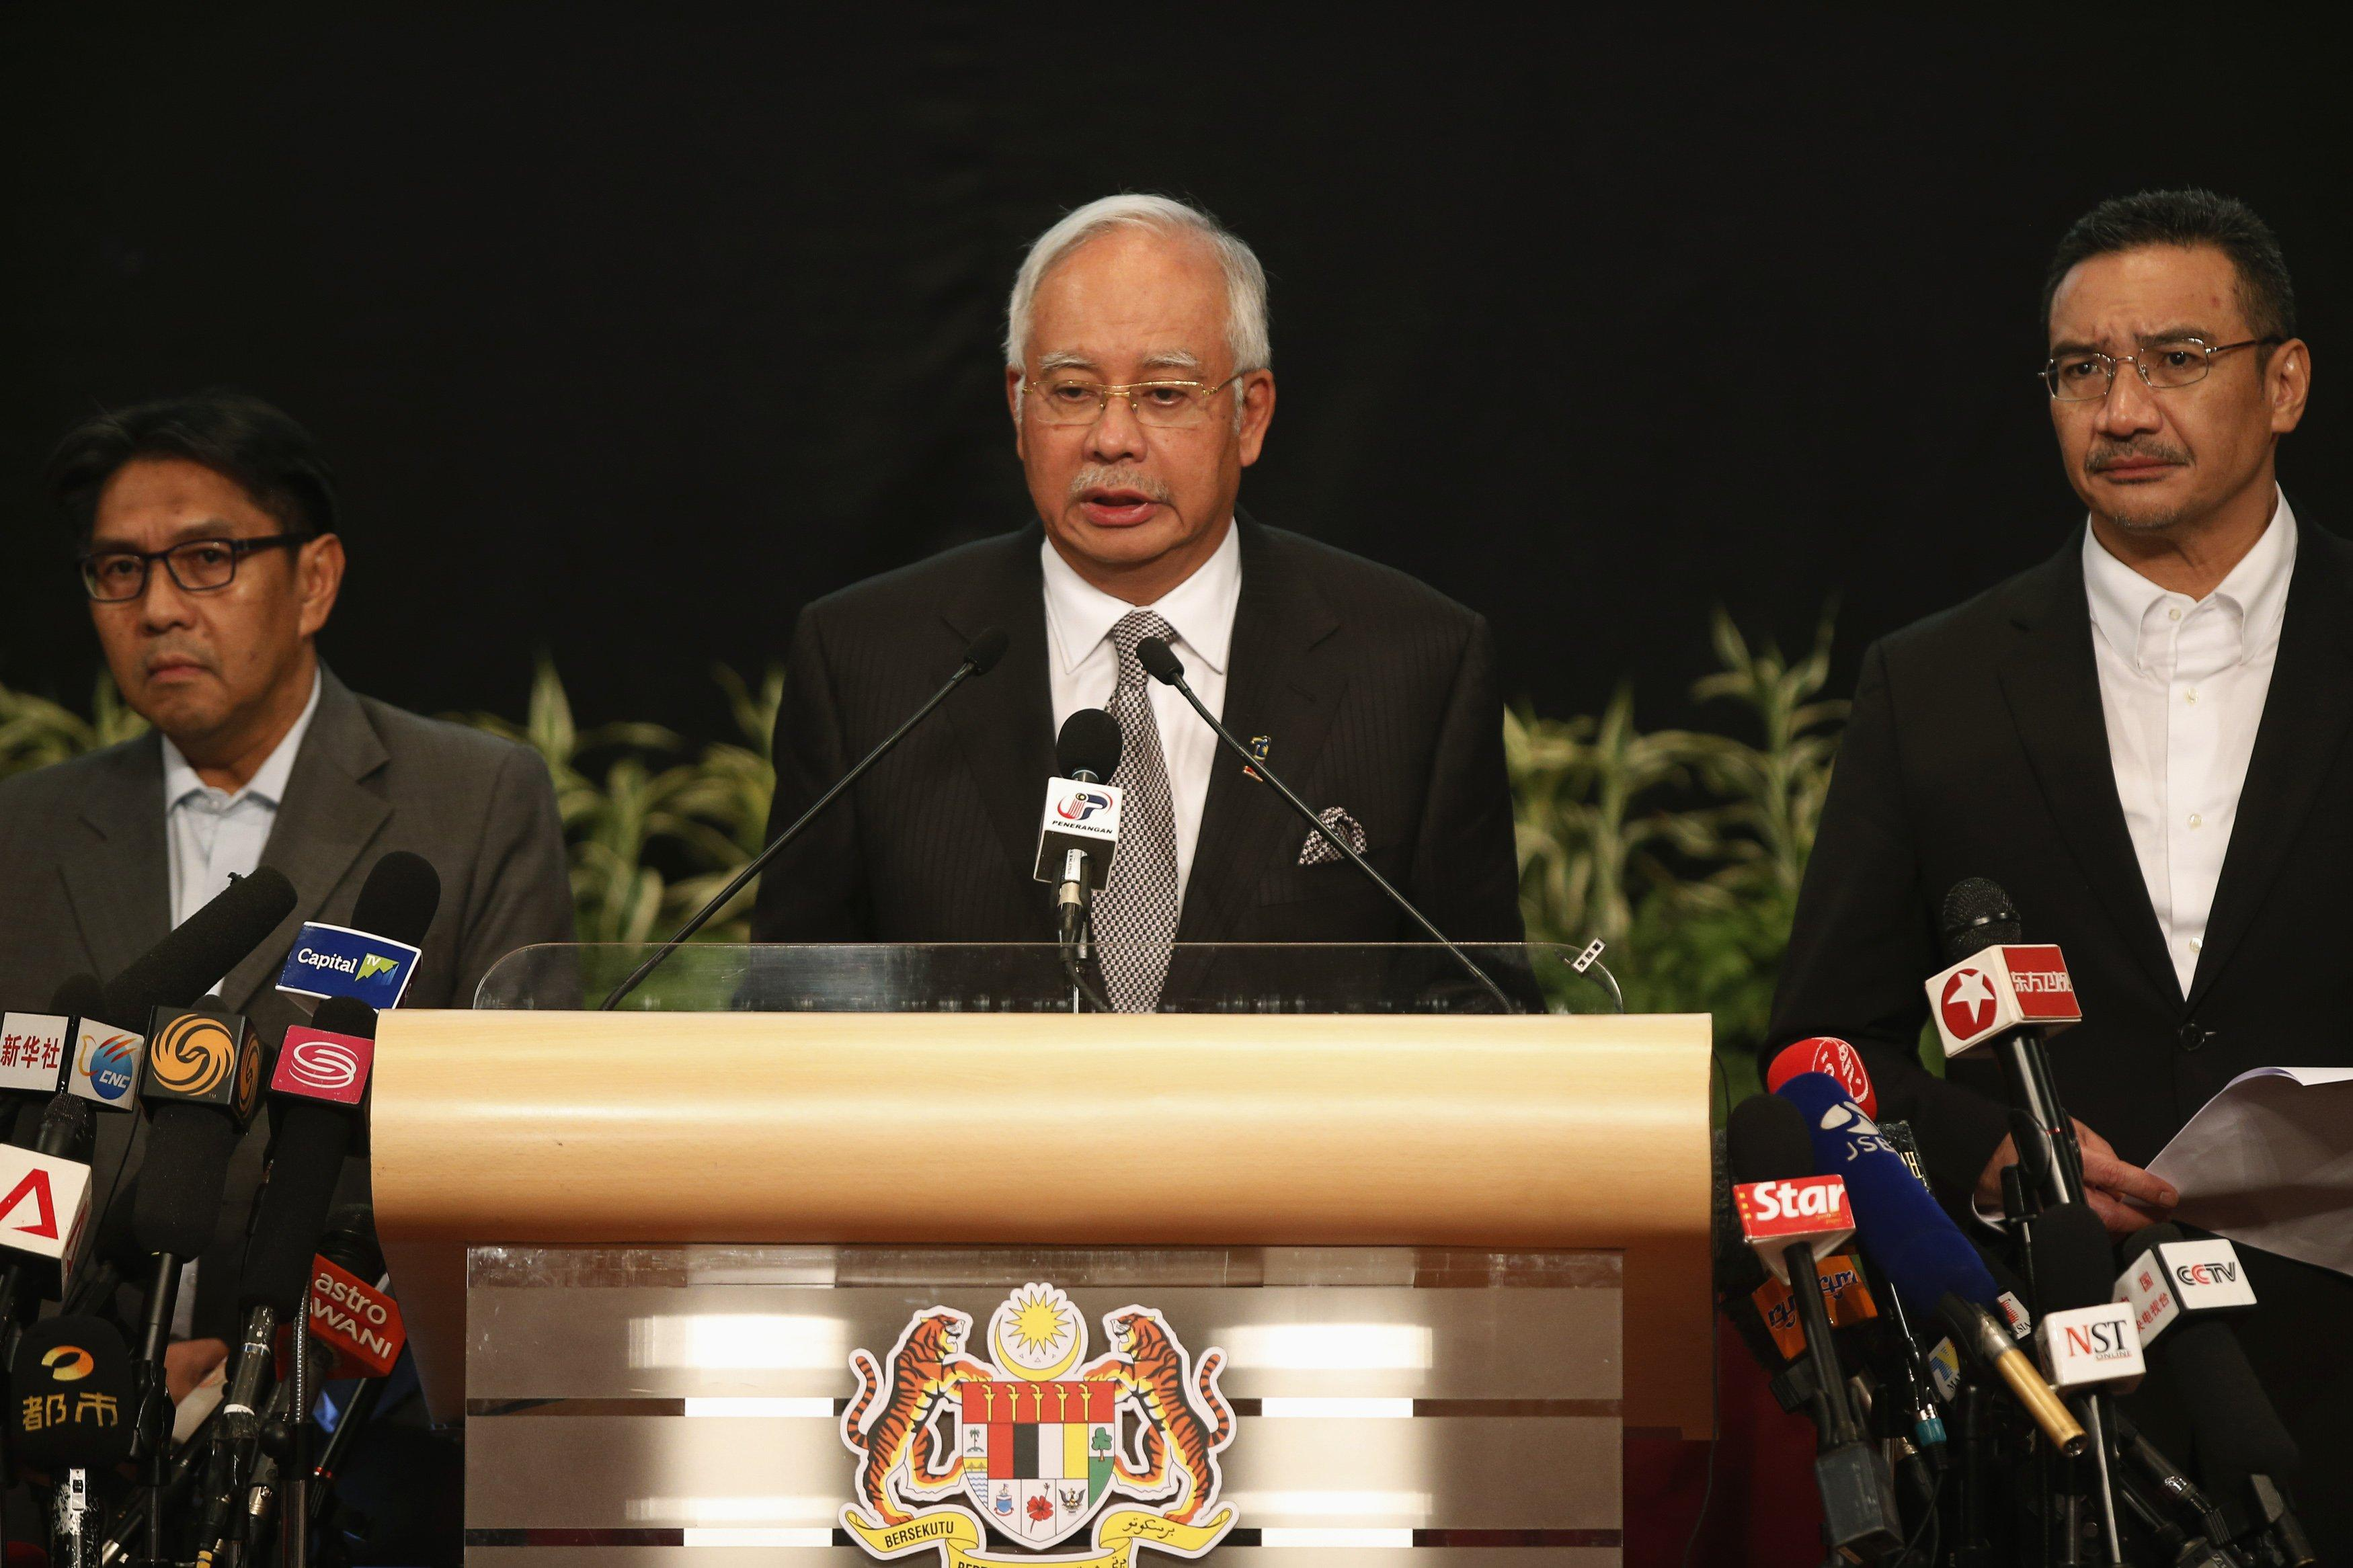 Najib Razak briefing march 24